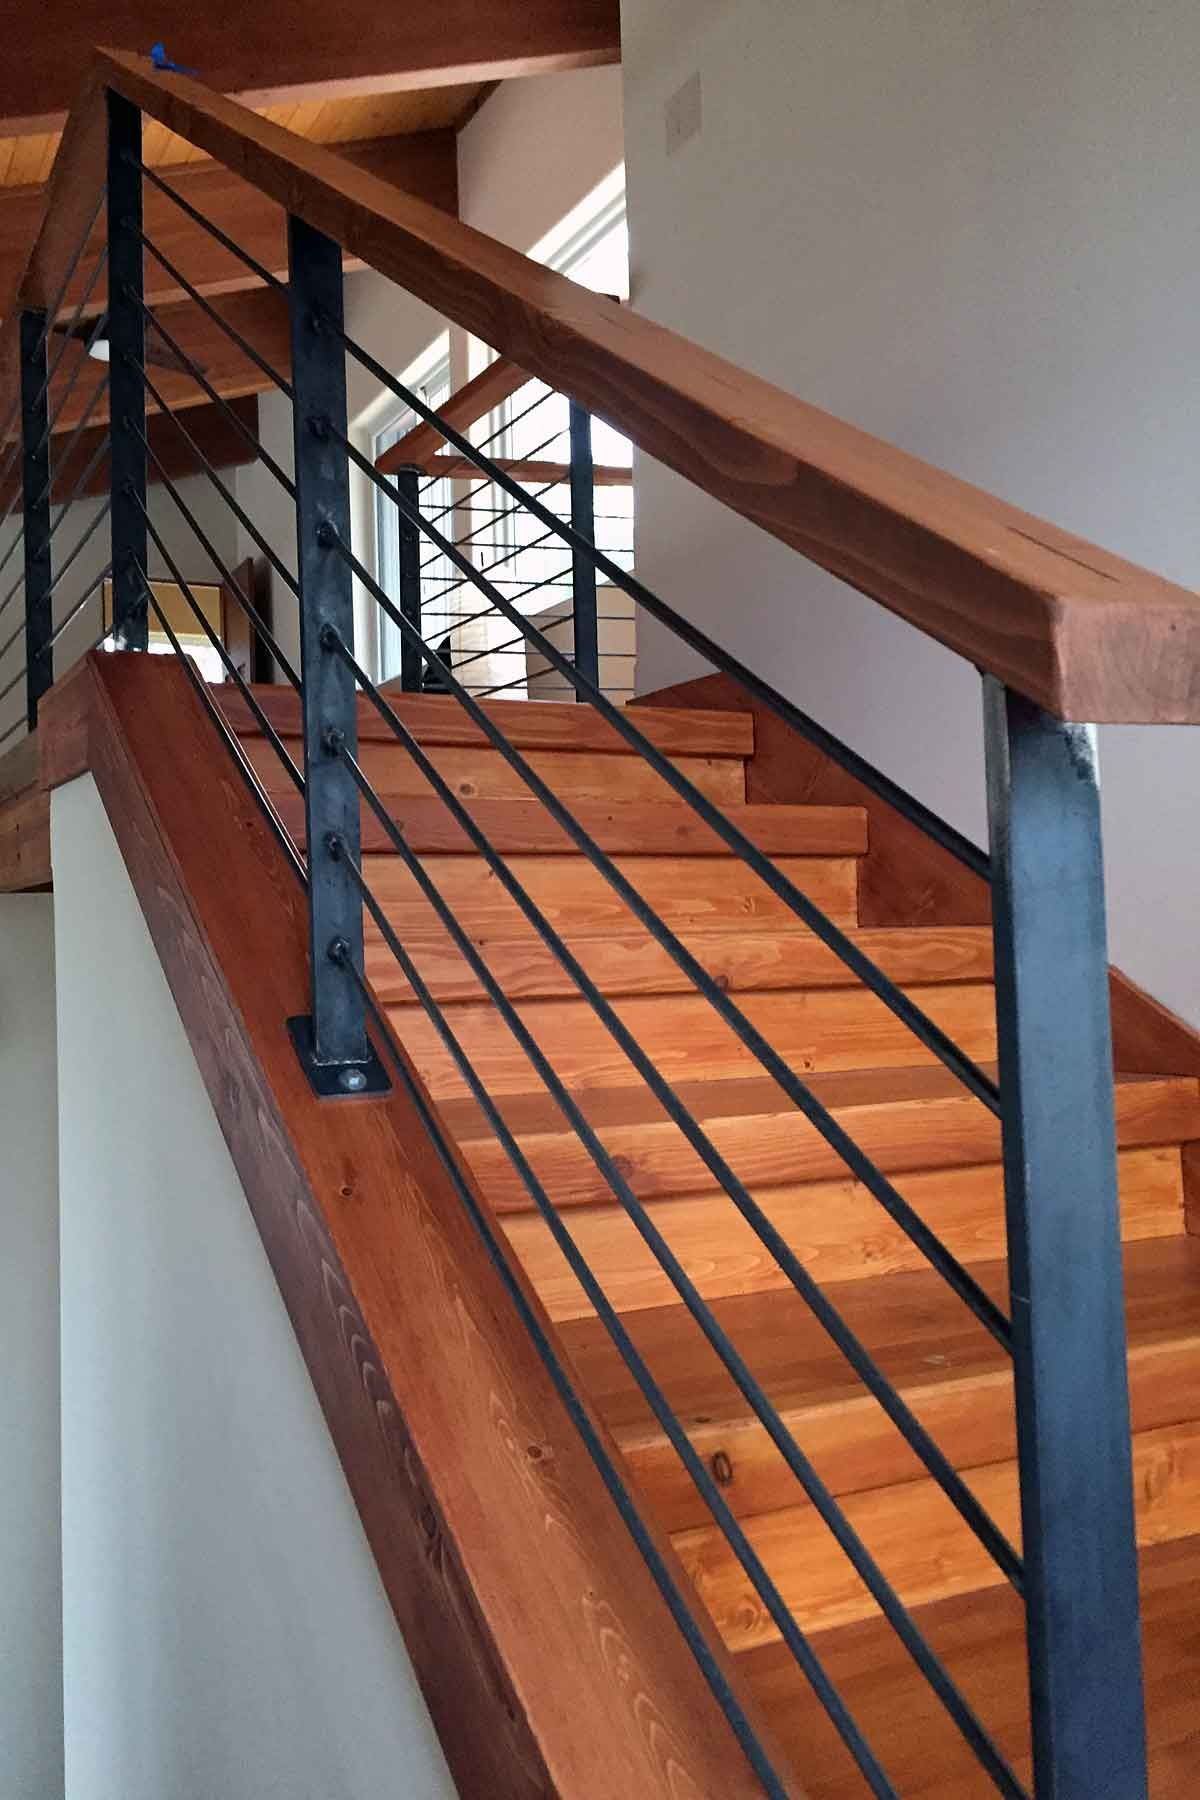 Photo Raw Steel Handrail Featuring Wood Cap Metal Stair   Wood And Metal Staircase Design   Staircase Ss Handrail   Steel   Modern   Rustic   Fabrication